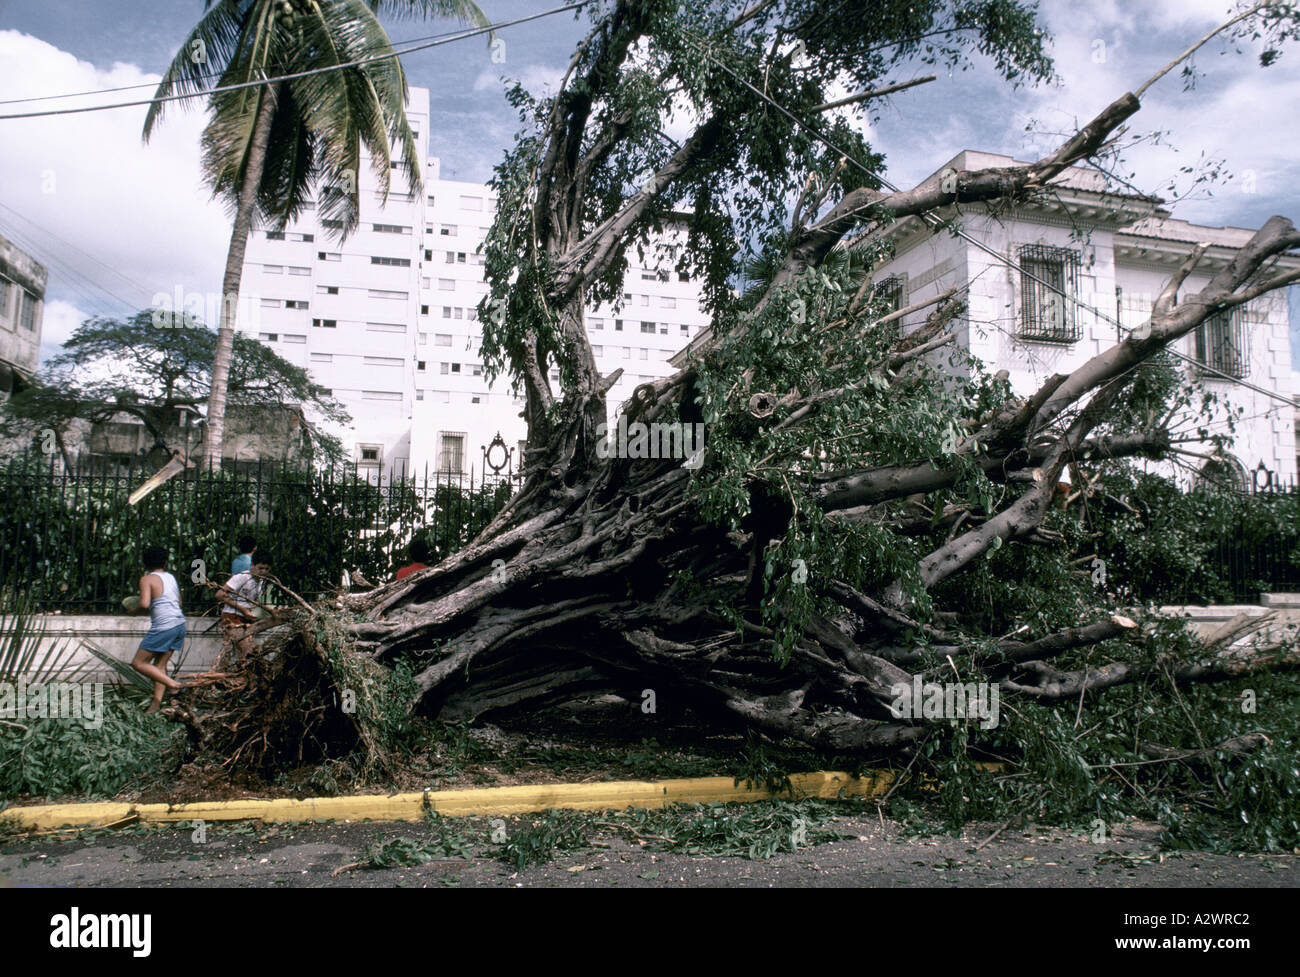 Tree uprooted, lying across the pavement after a hurricane in Havana Cuba - Stock Image